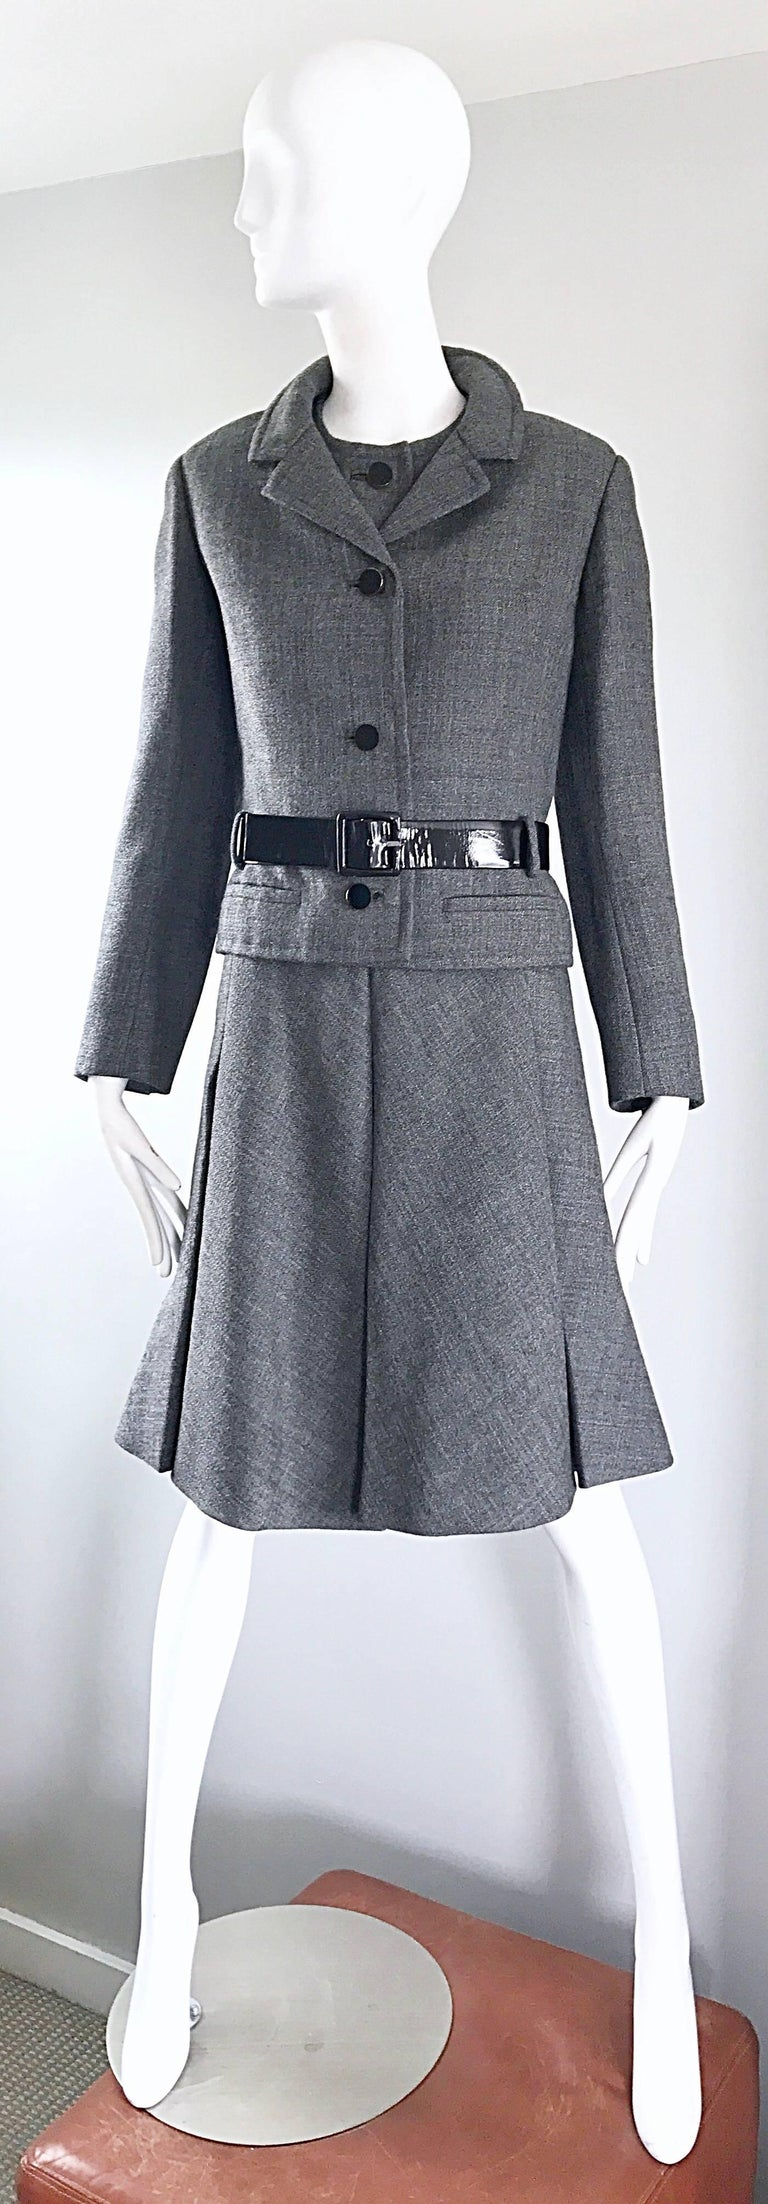 Nina Ricci Haute Couture Vintage Grey Wool Dress and Jacket Ensemble, 1960s   For Sale 4